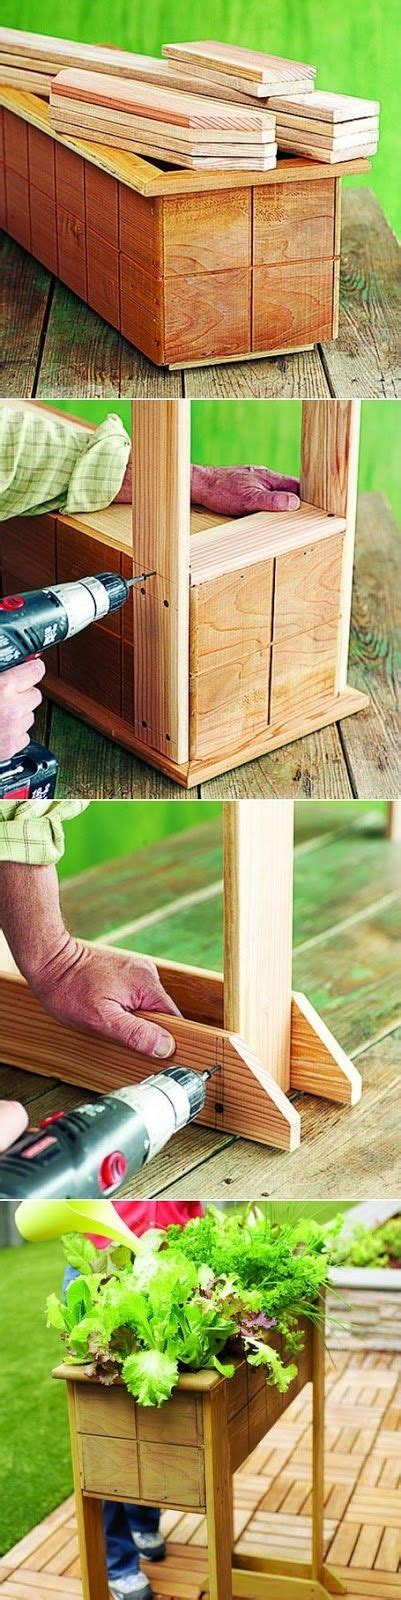 How To Build A Planter Box With Legs by How To Build A Planter Box With Legs Woodworking